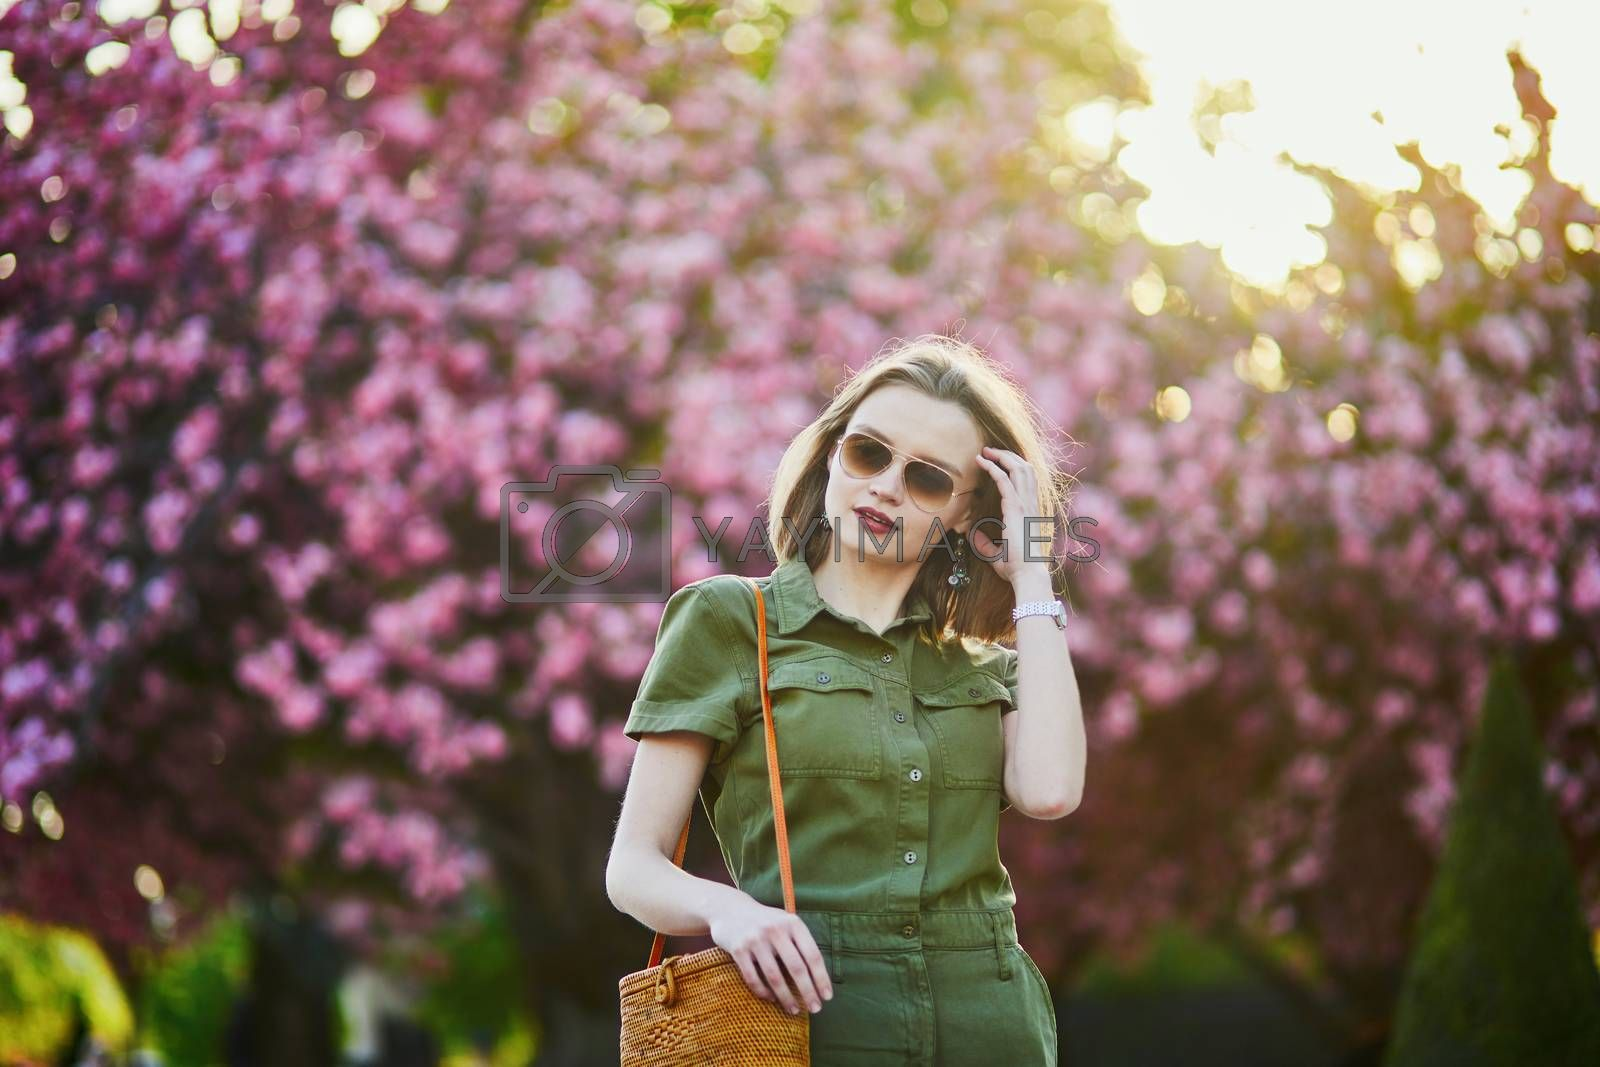 Beautiful French woman walking in Paris on a spring day at cherry blossom season